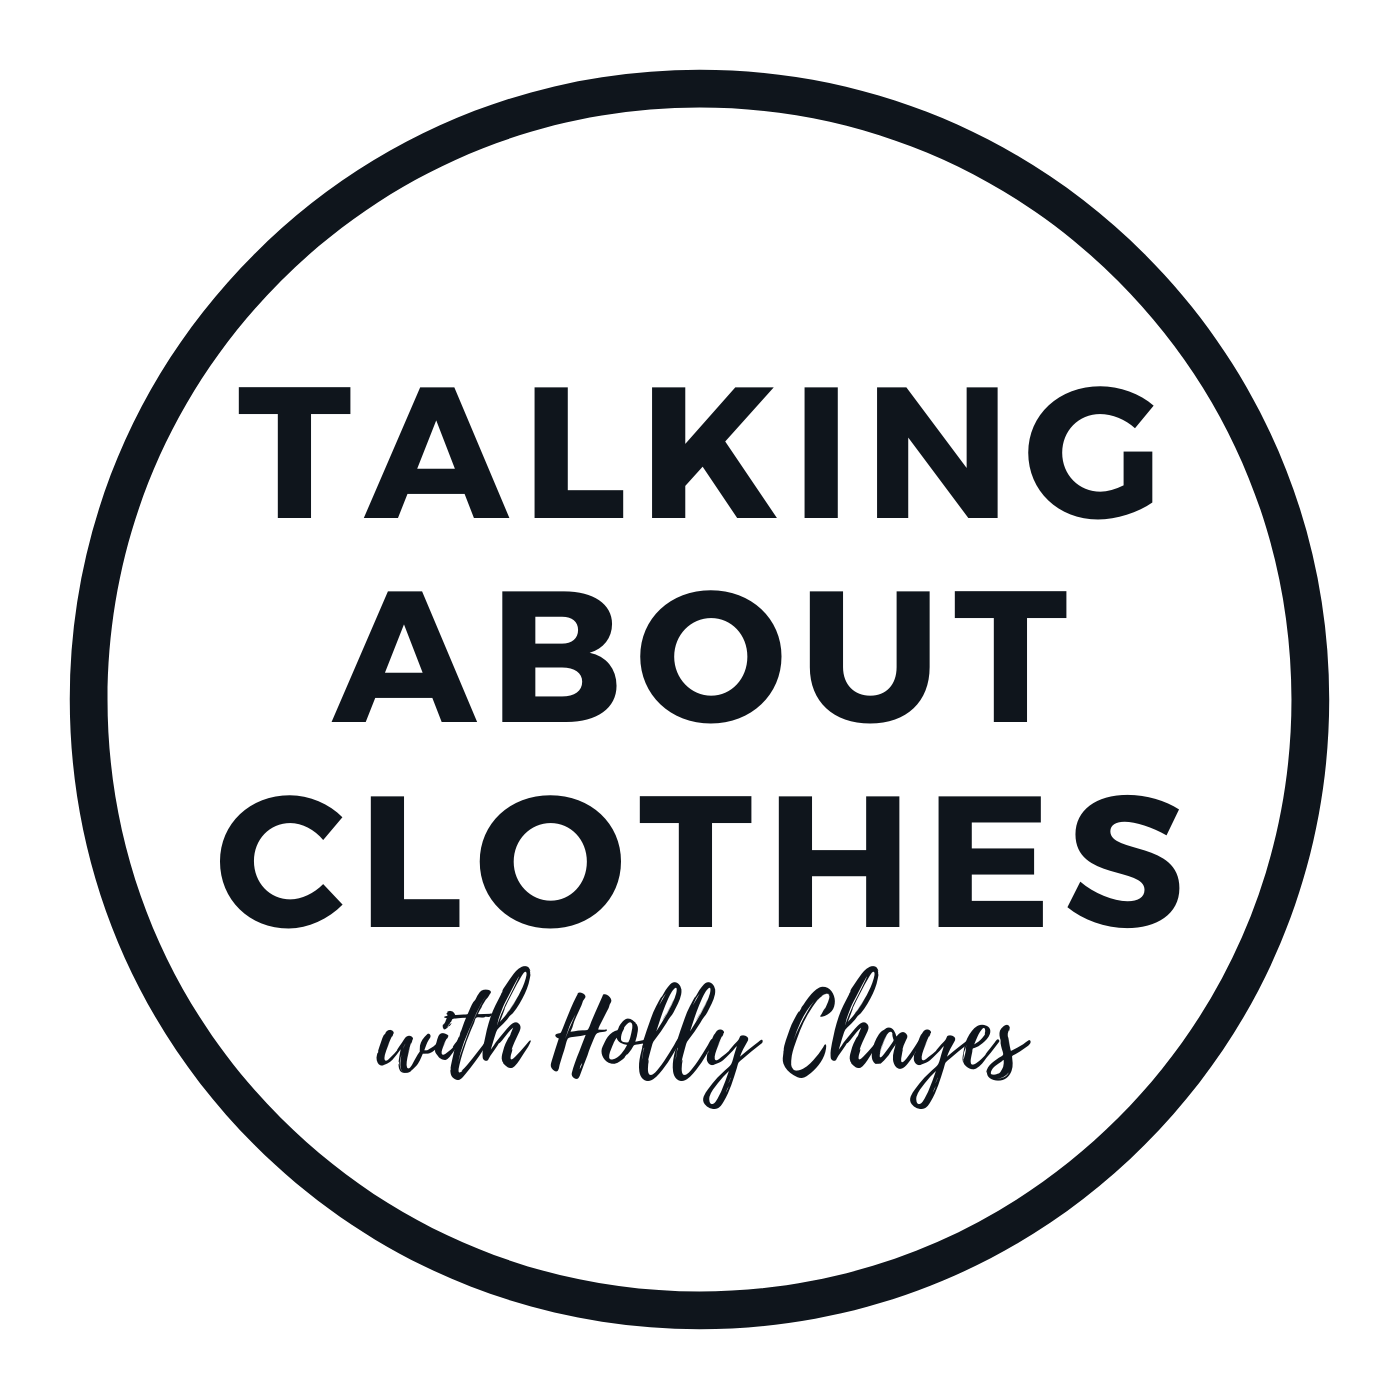 [Shopping Pre-Covid-19] Frustrating shopping experiences, quality clothes and big life transitions with Gwen Juleus